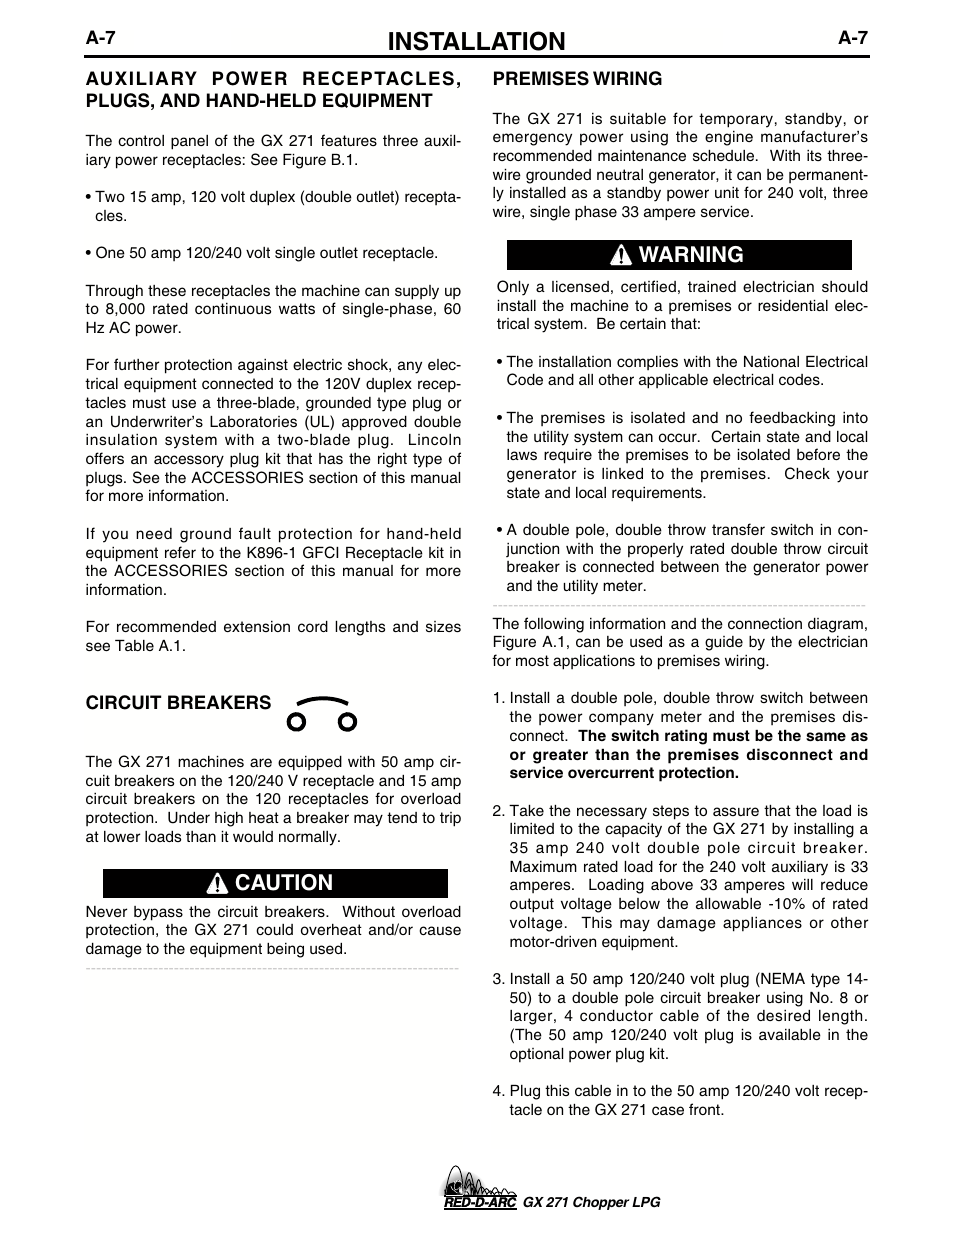 Installation Caution Warning Lincoln Electric Im635 Red D Arc Gx Circuit Breaker Apparatus And On Wiring 240 Volt Gfci 271chopper Lpg User Manual Page 15 48